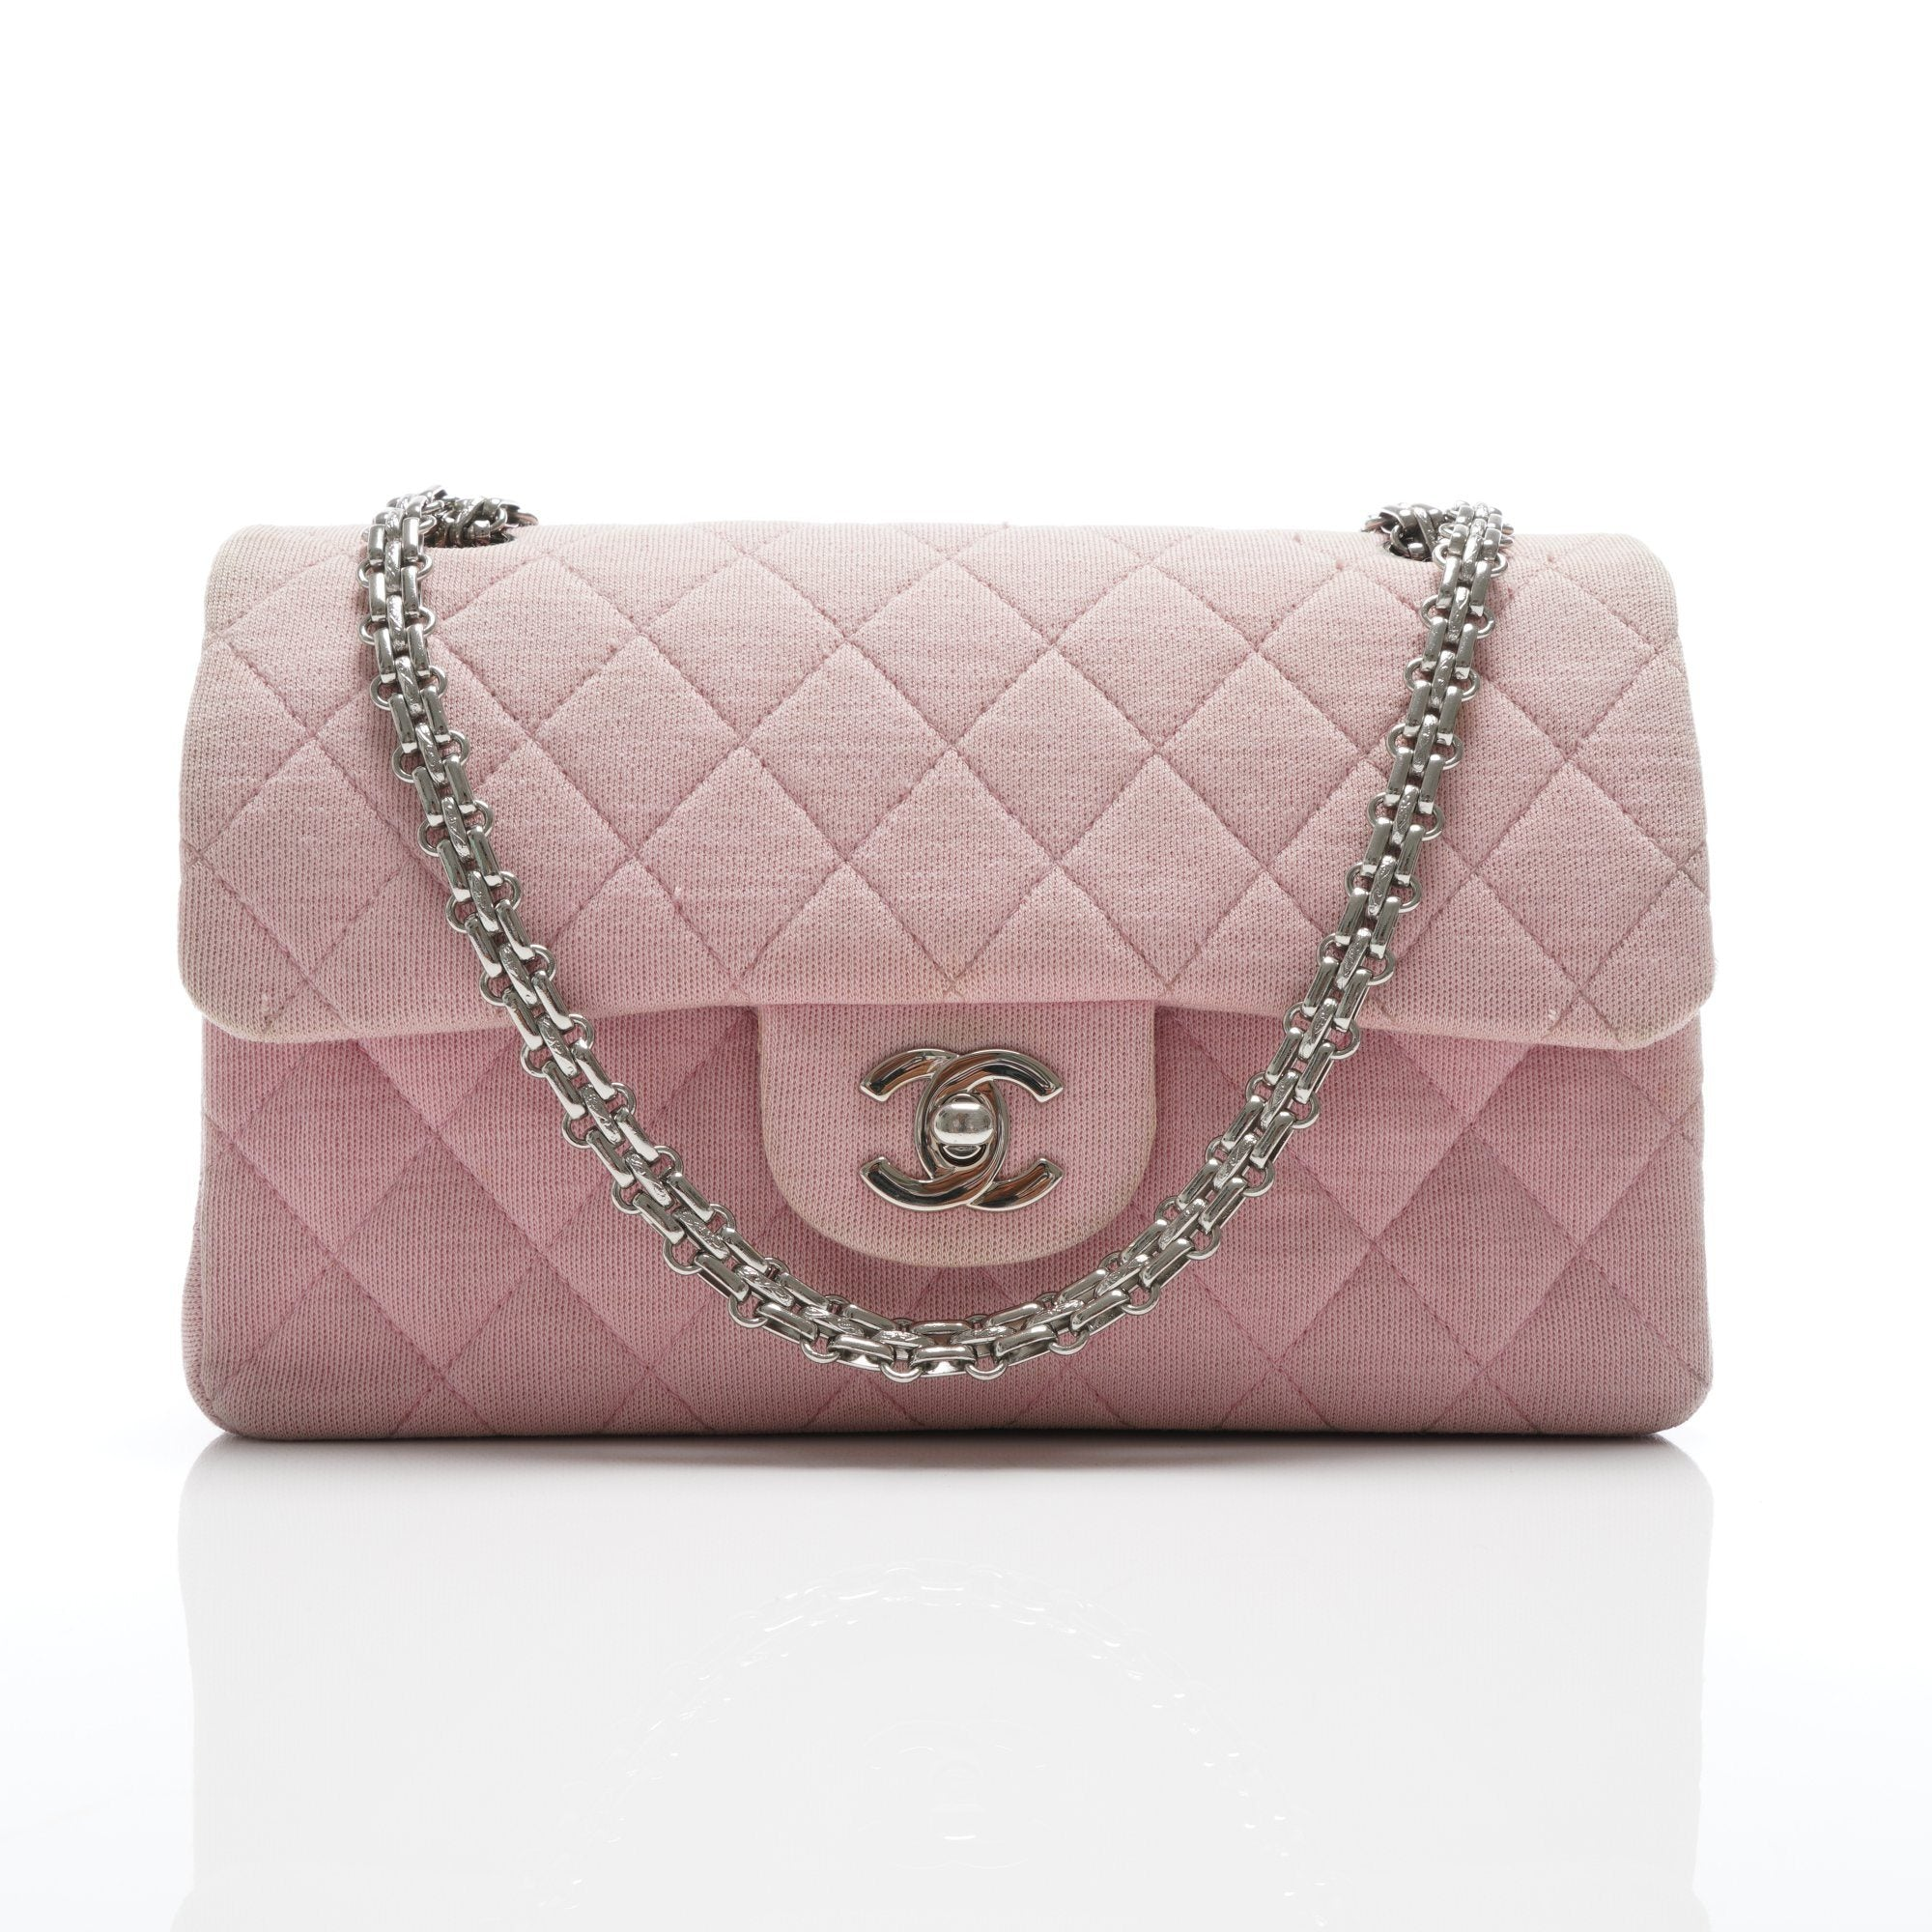 Chanel Fabric Medium Quilted Double Flap Bag